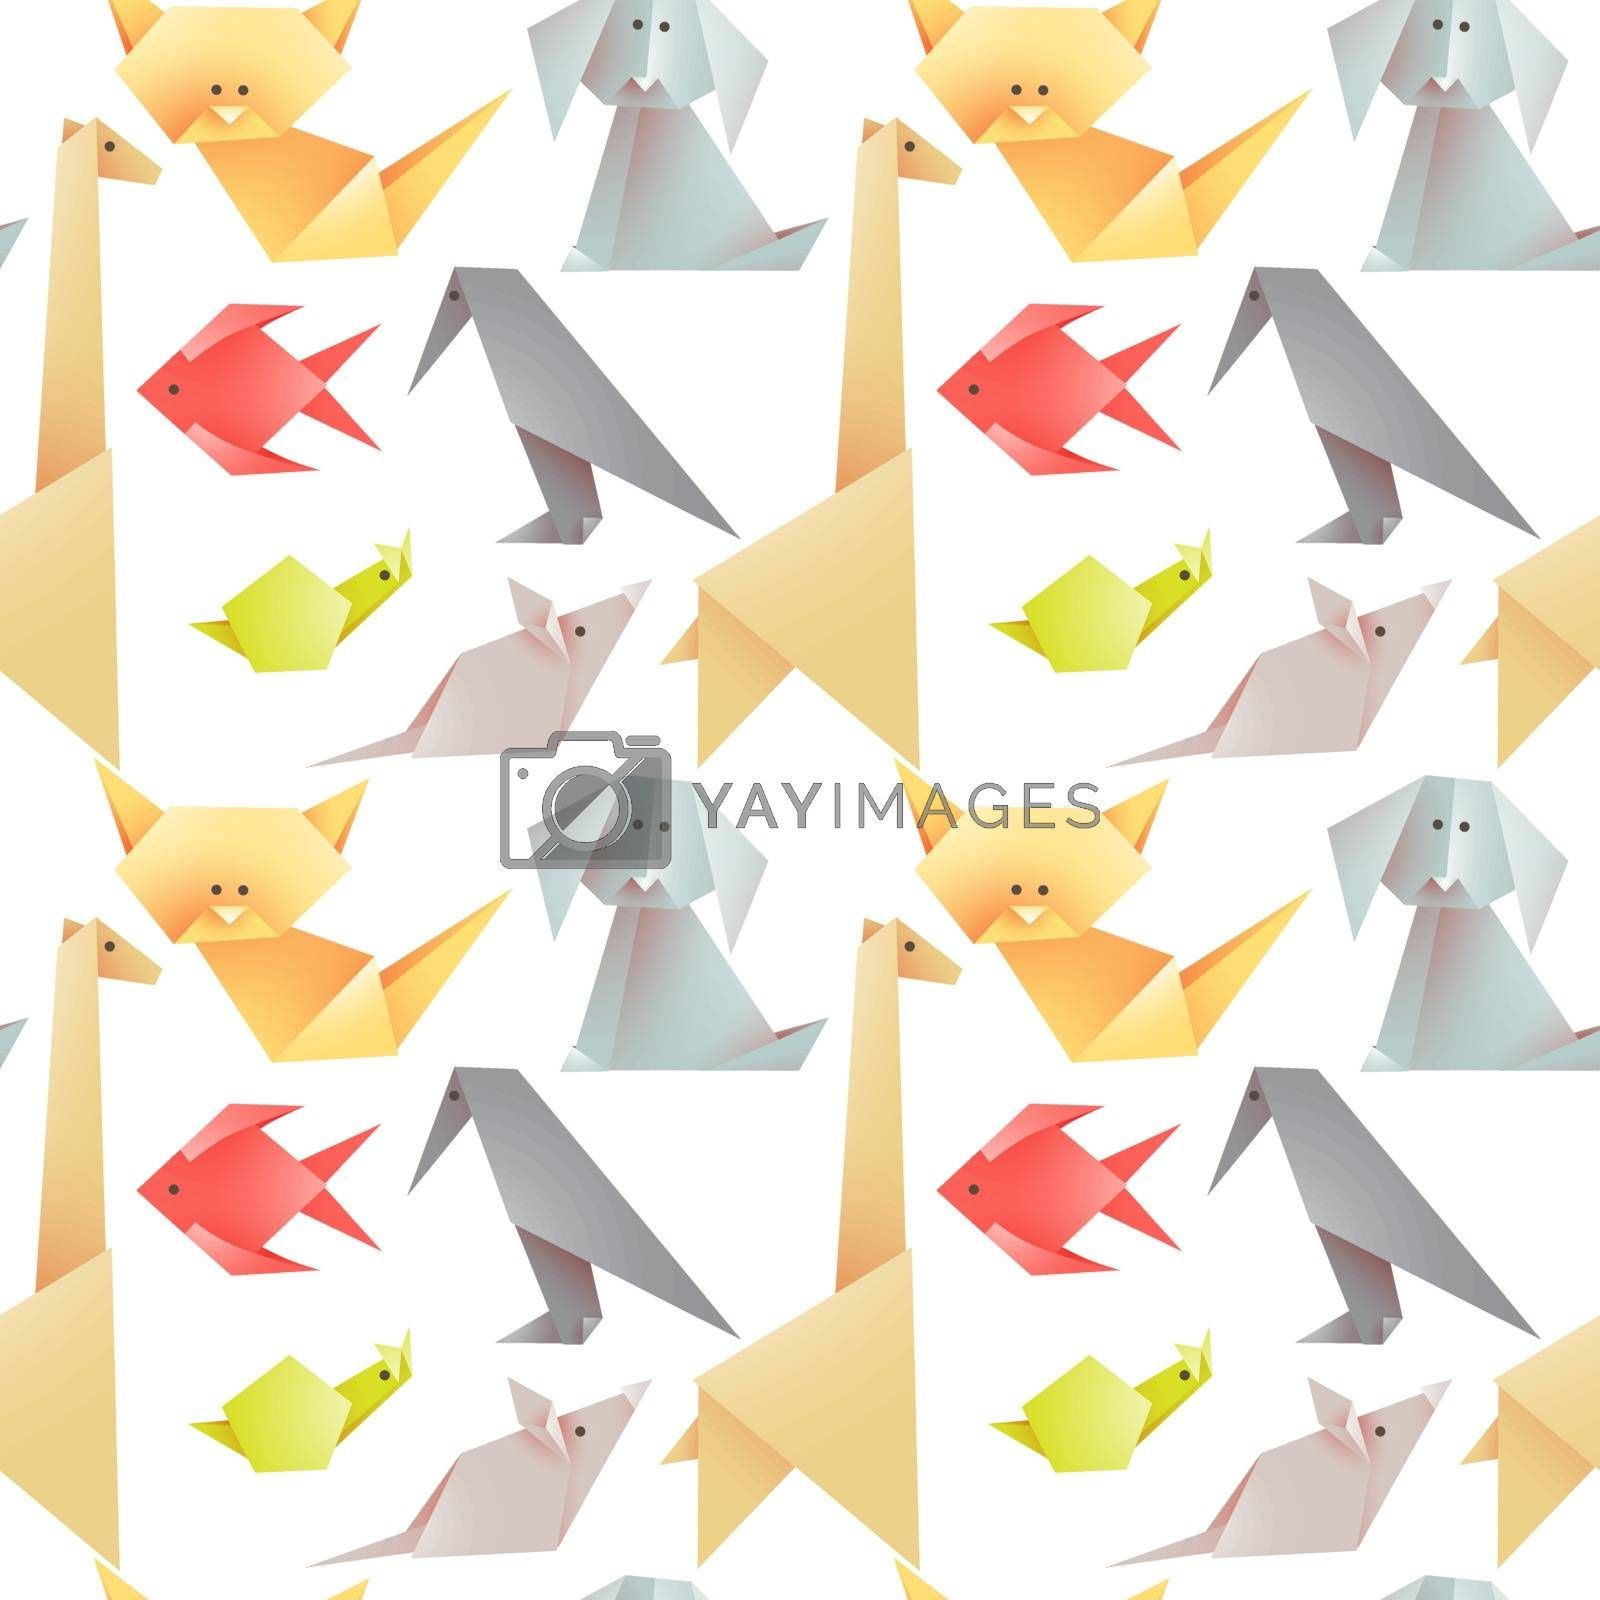 Set of origami animals - figures folded from colored paper. Vector seamless pattern on a white background